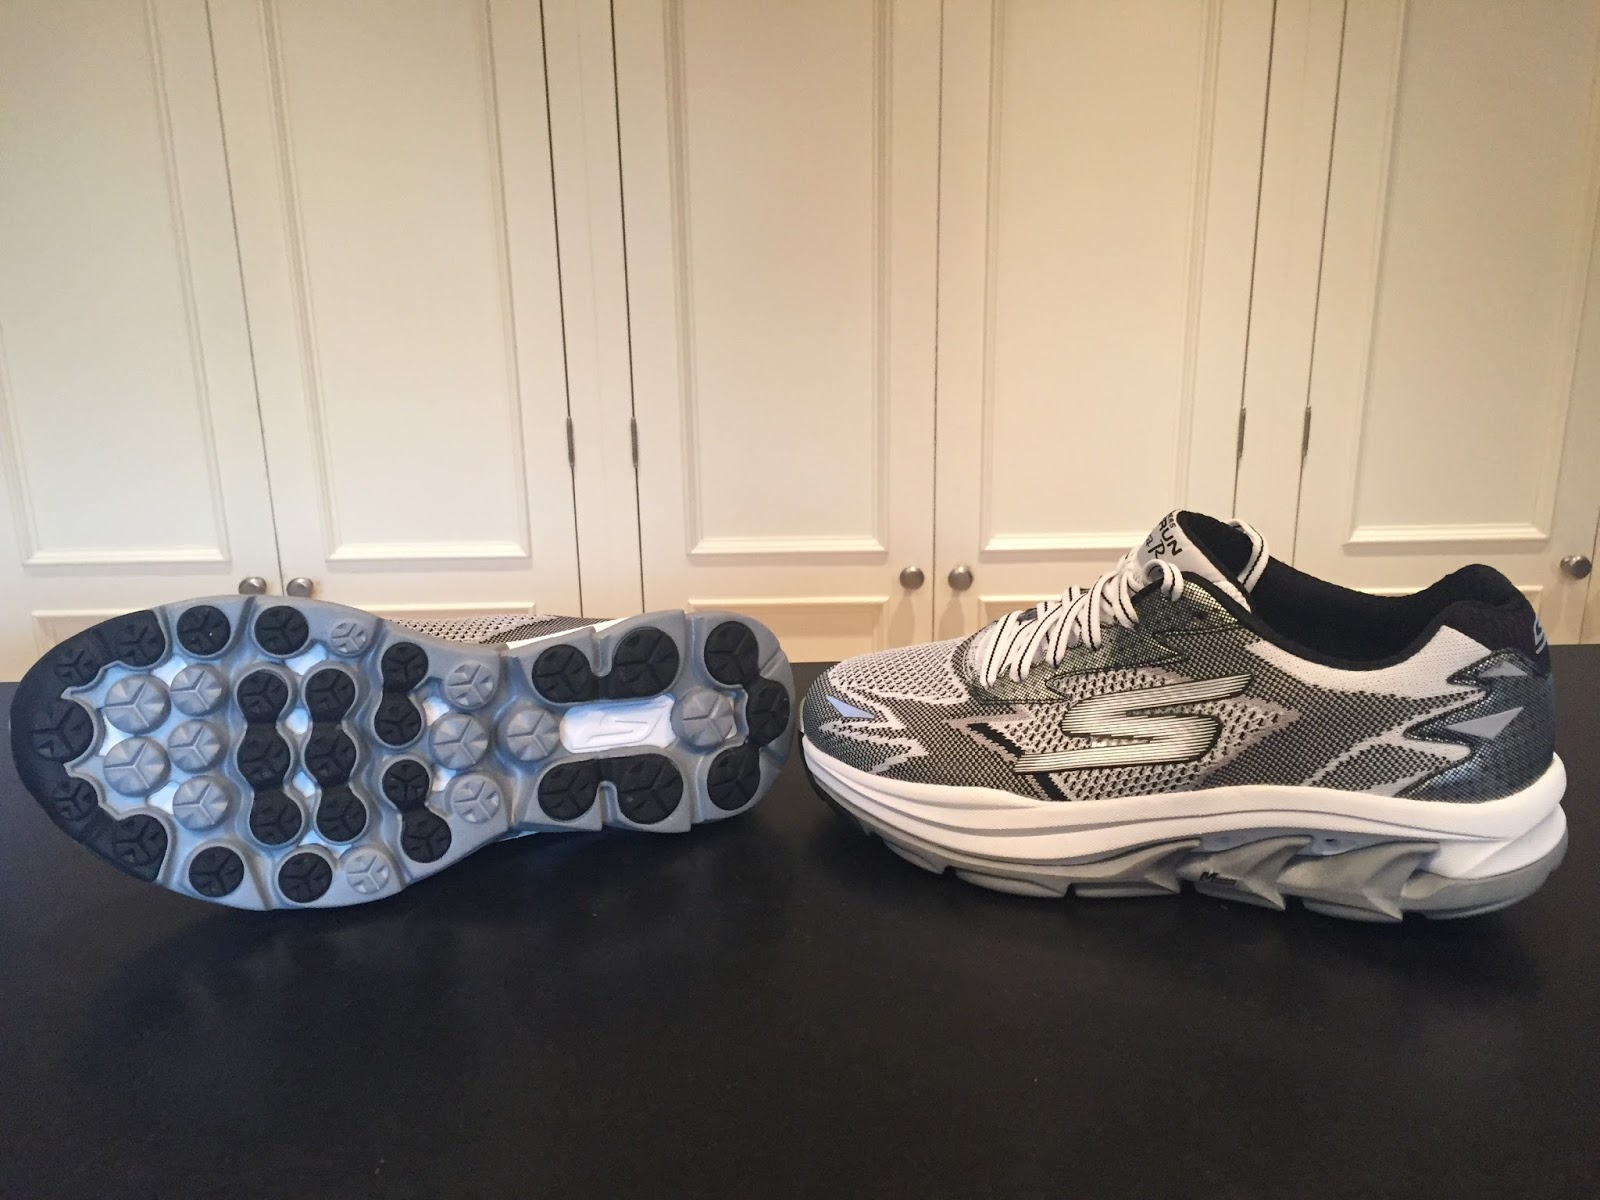 antepasado formación referencia  Road Trail Run: Review Skechers GORun Ultra Road-Max Cushion with a  Innovative Well Ventilated, Supportive Knit Upper